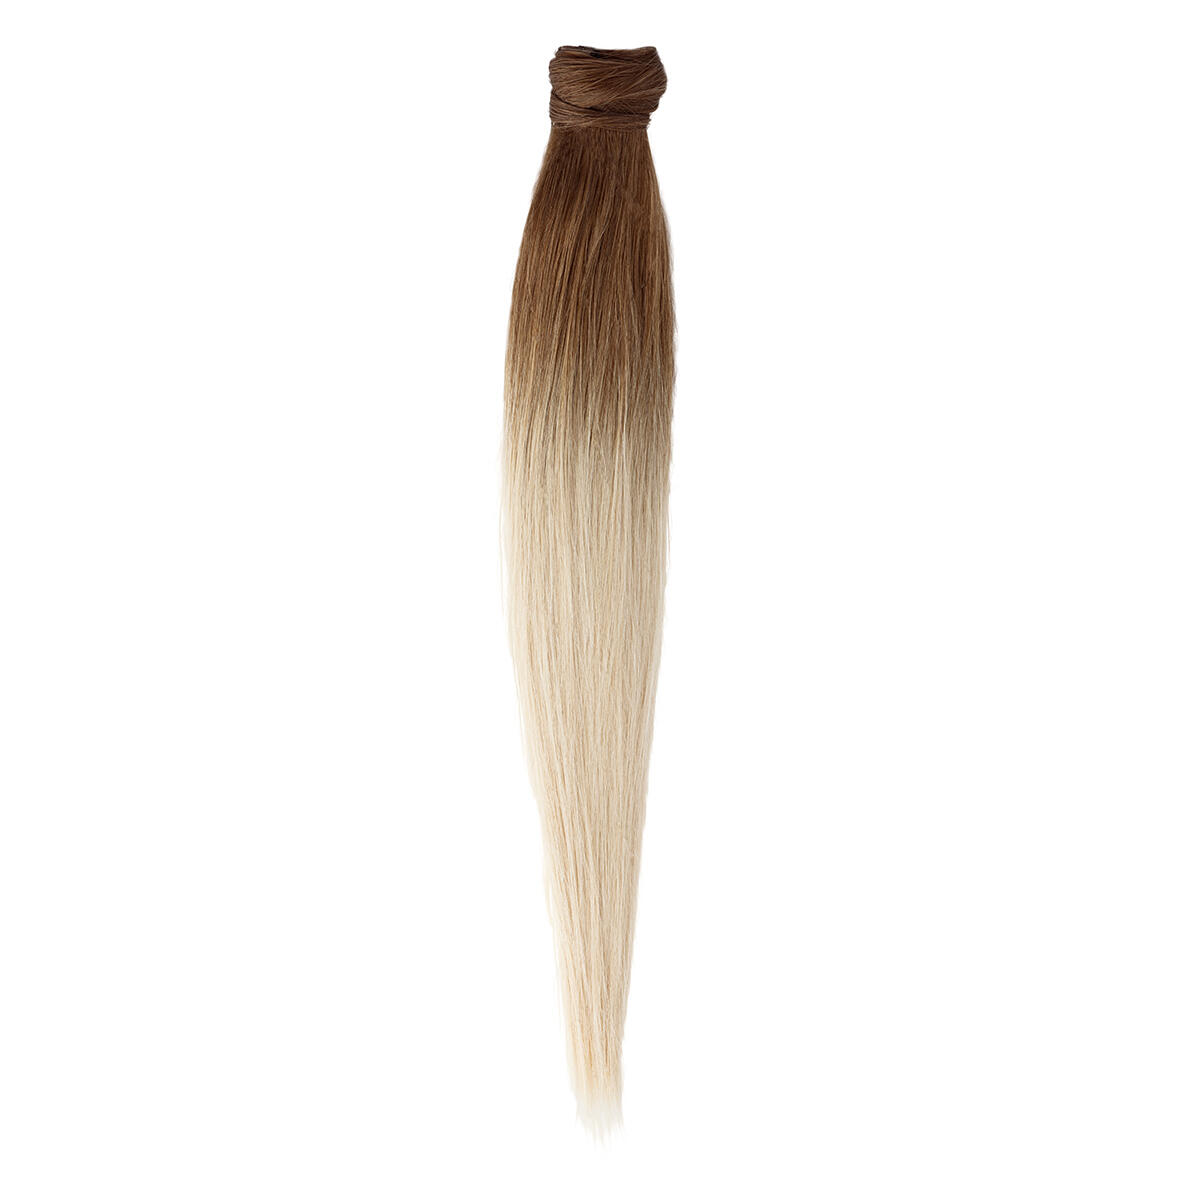 Clip-in Ponytail Original O5.1/10.8 Medium Ash Blond Ombre 40 cm